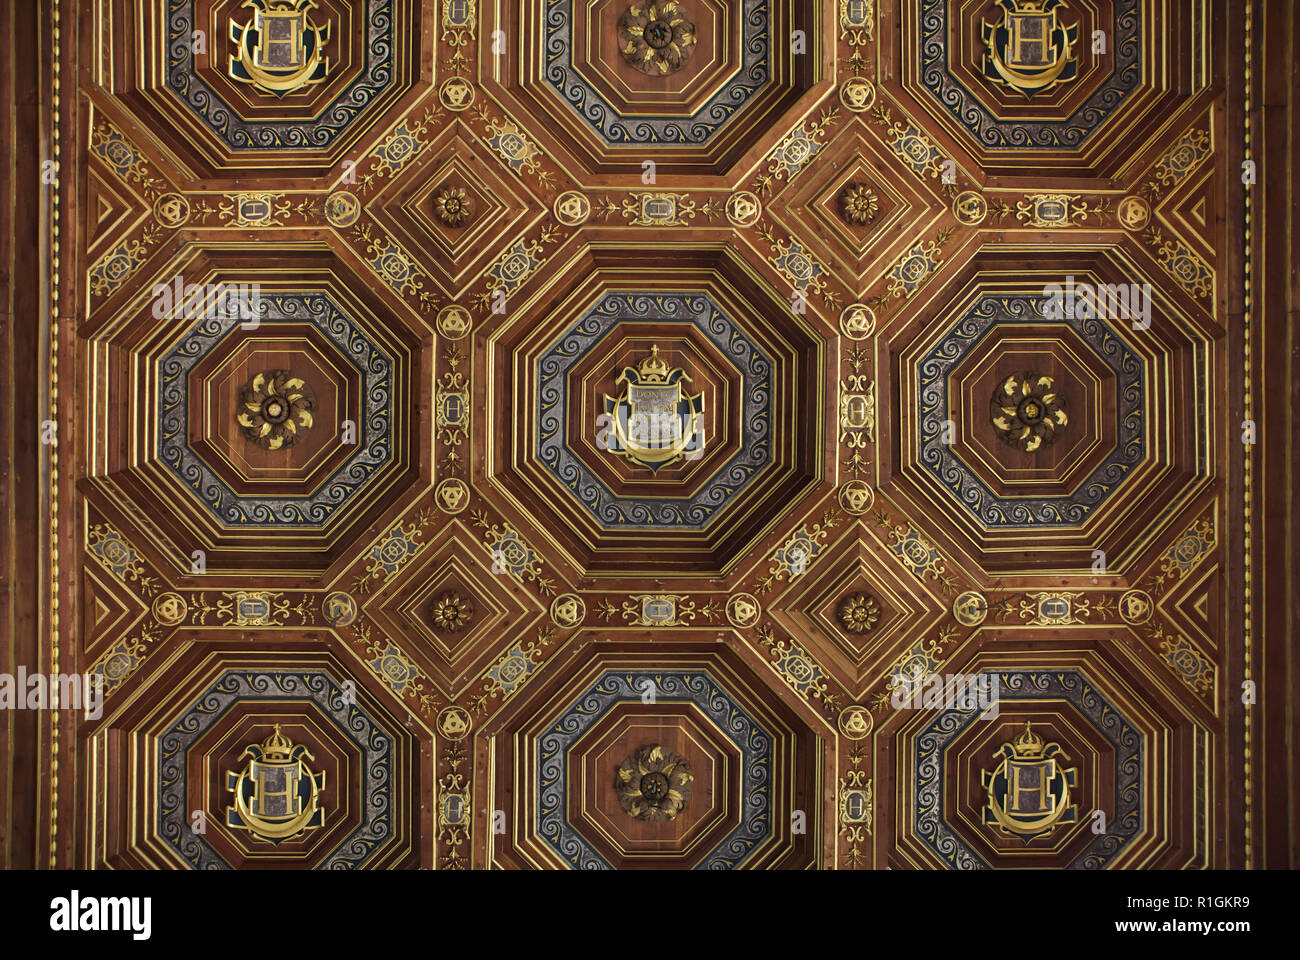 Renaissance coffered ceiling in the ballroom in the Palace of Fontainebleau (Château de Fontainebleau) near Paris, France. The room decoration started under King Francis I of France was completed by his son Henri II. Stock Photo